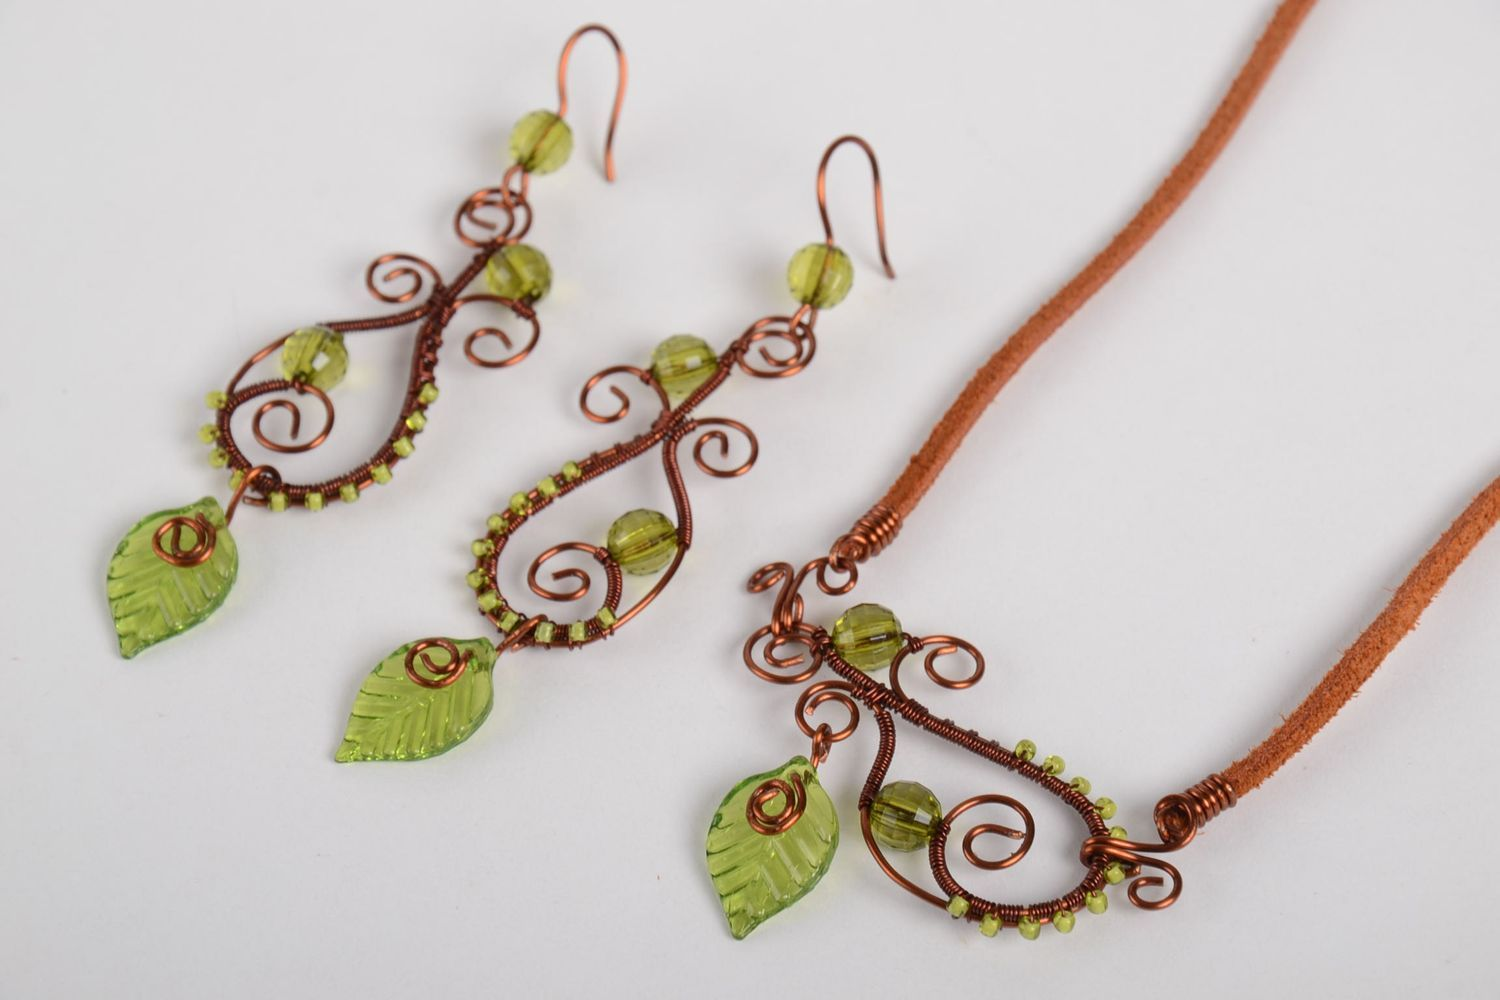 Handmade jewelry set of 2 items copper accessories for women gift ideas photo 4